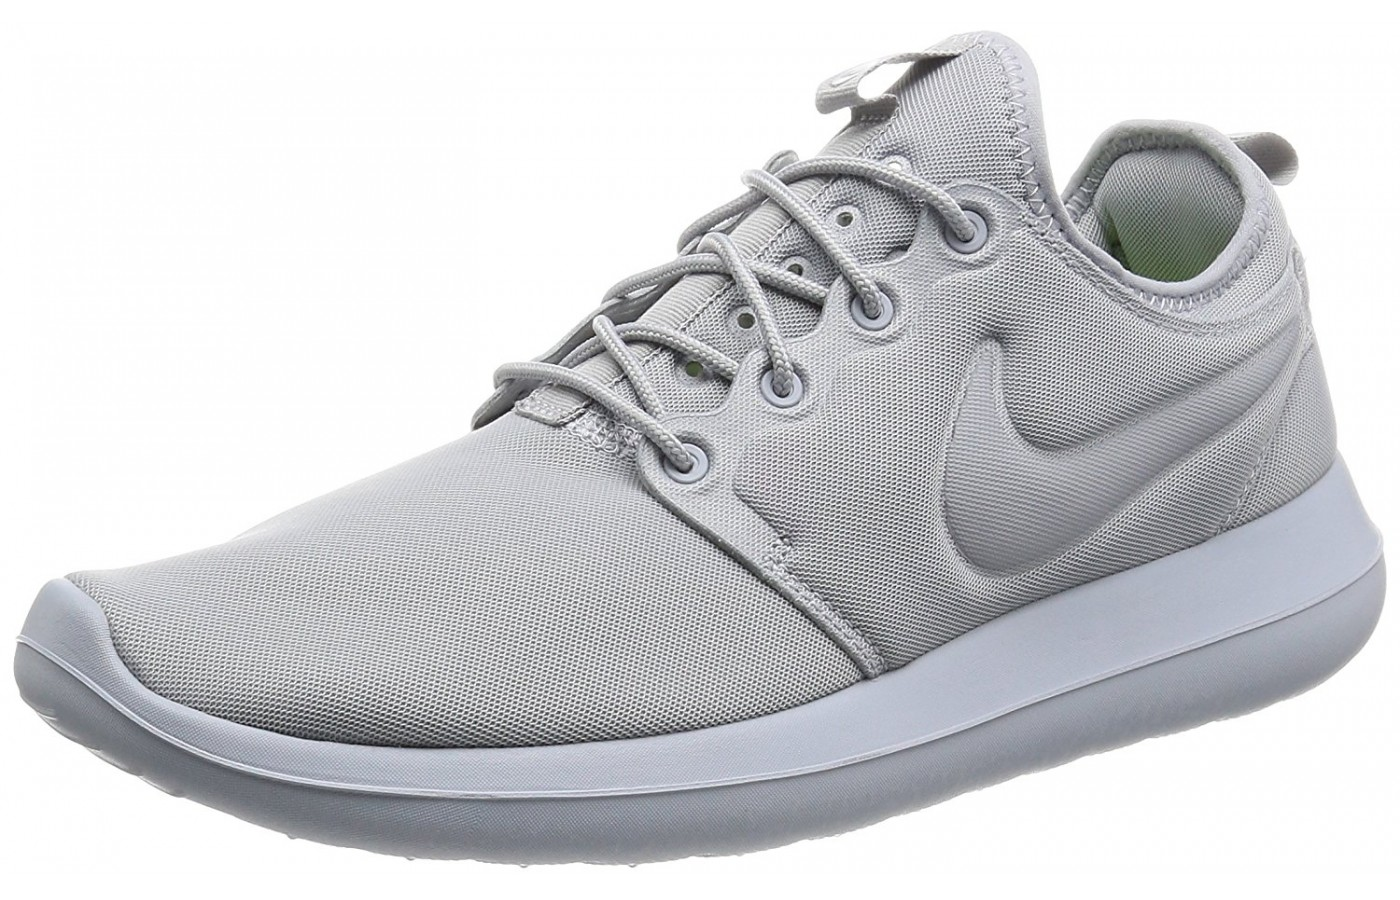 01a90a0e5b6d A three quarter view of the Nike Roshe 2 running shoe ...